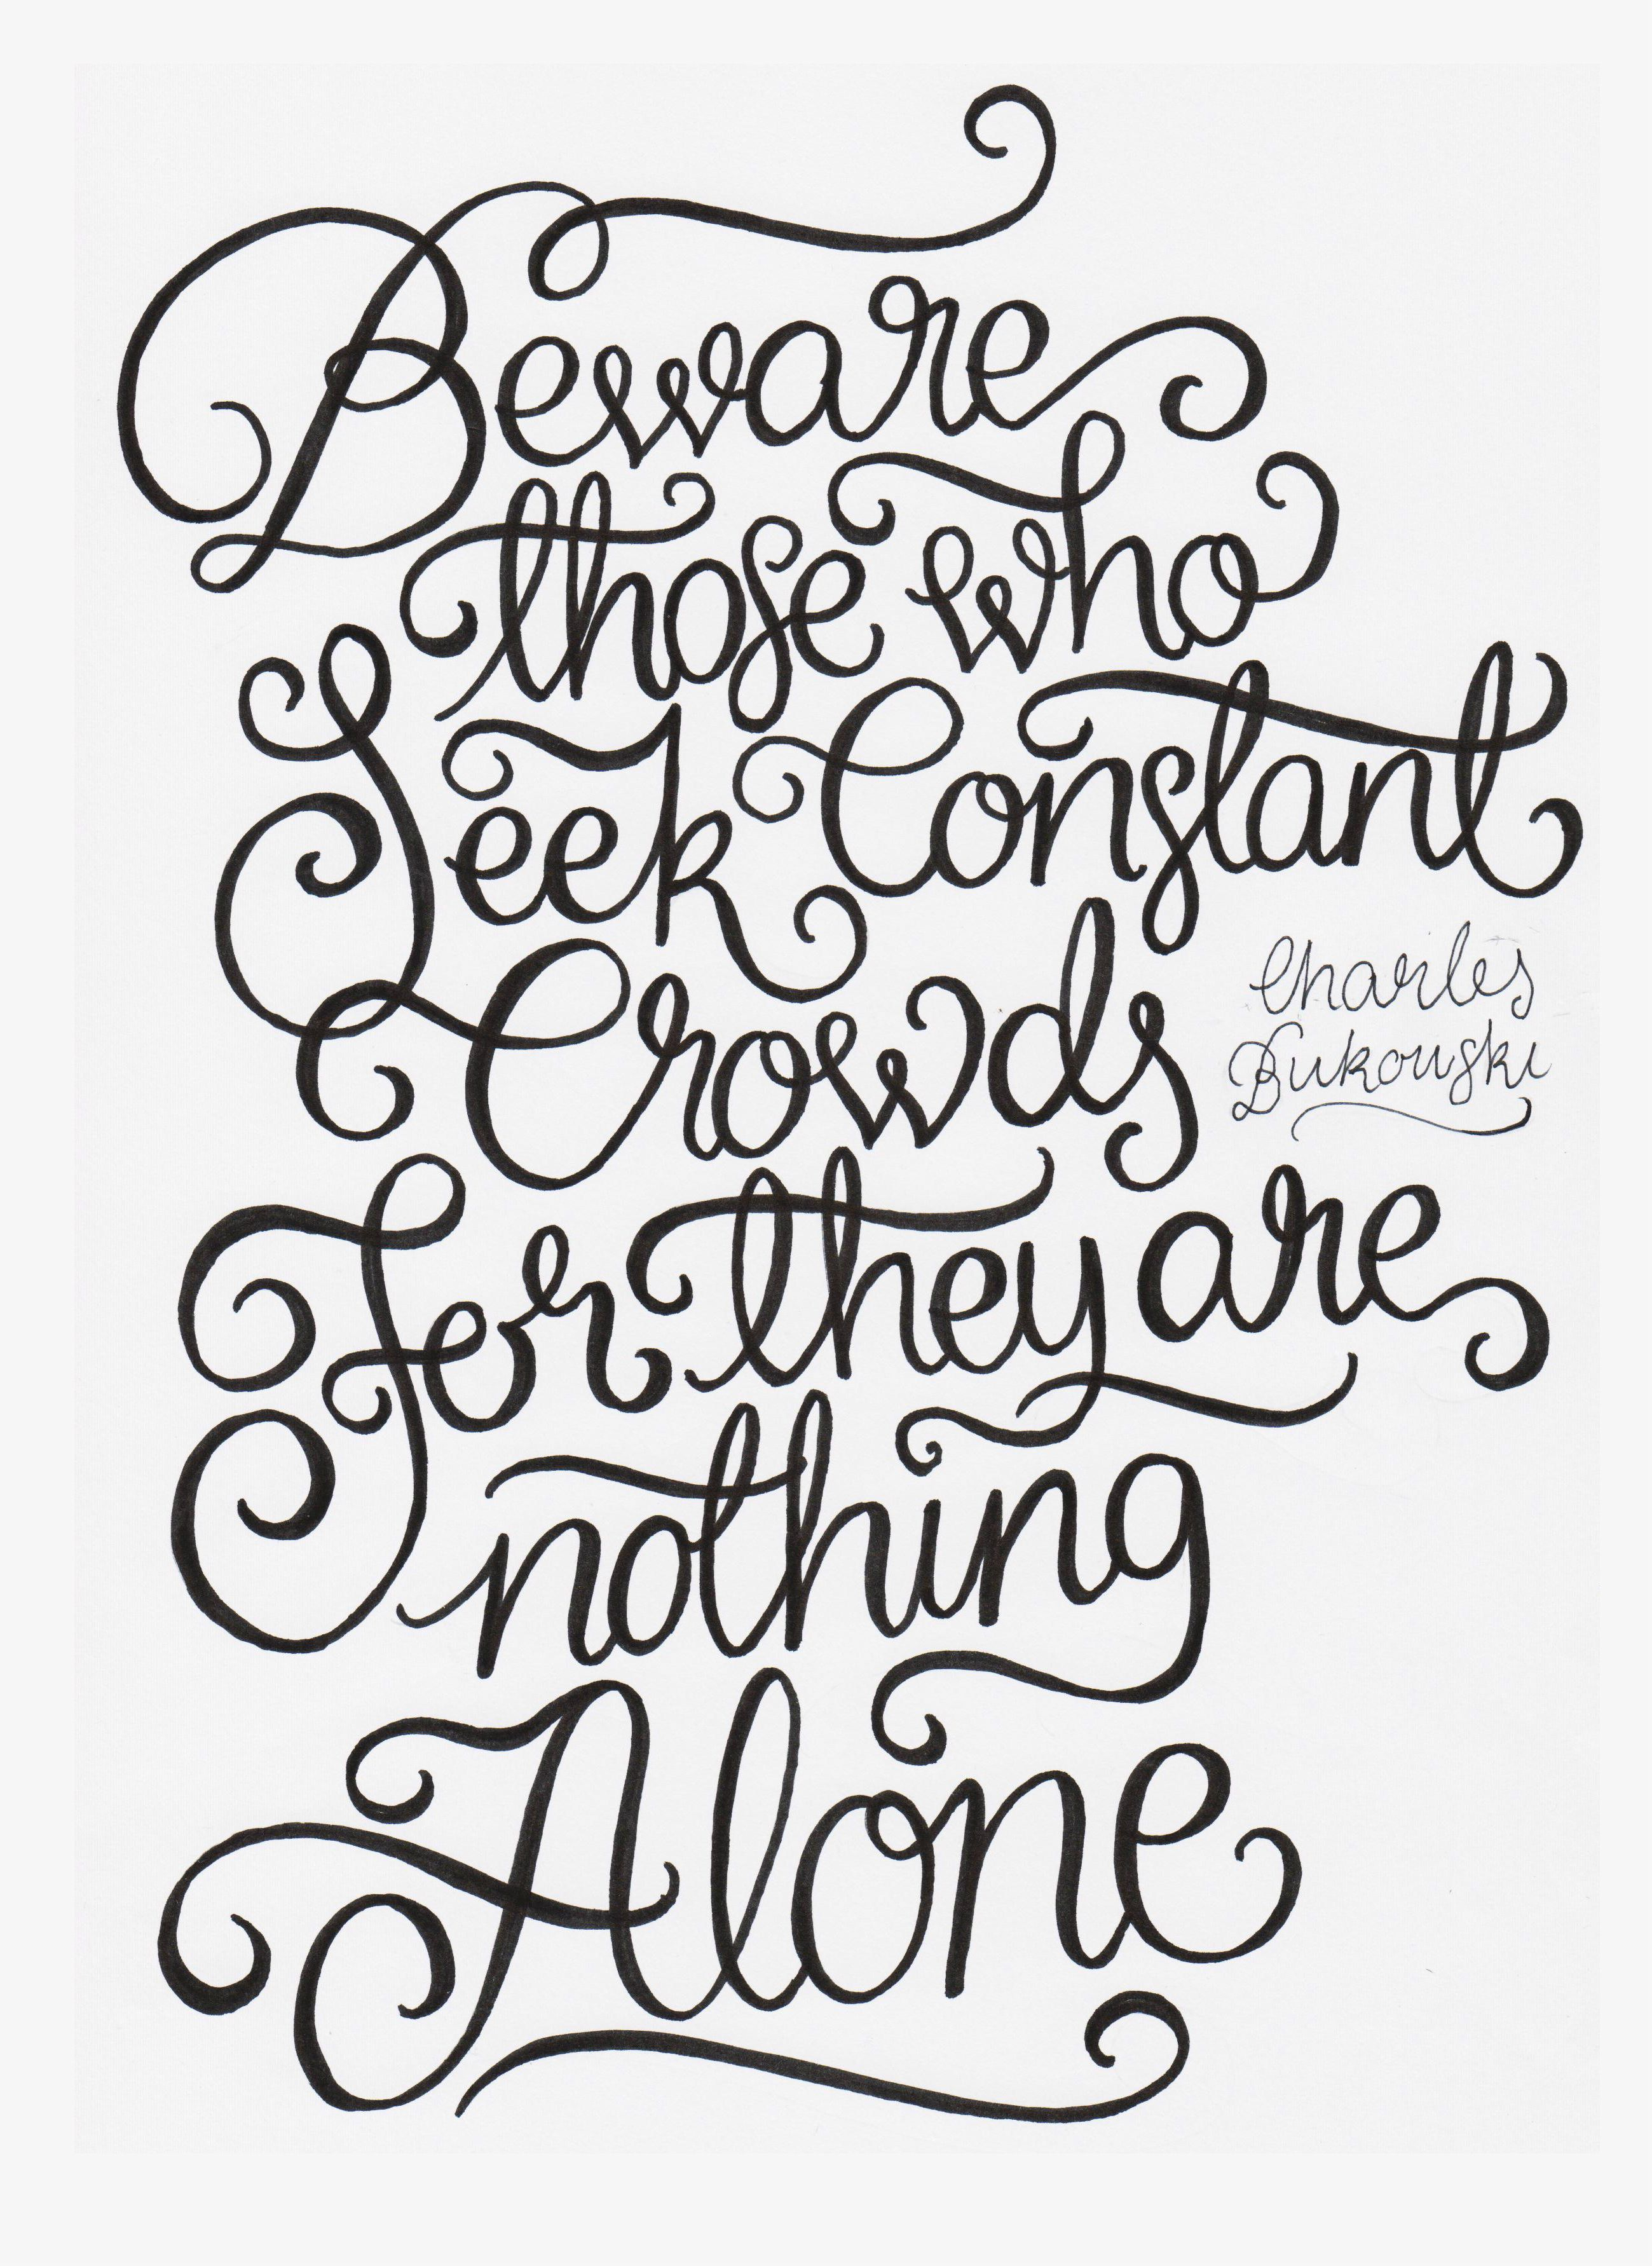 Beware those who seek constant crowds, for they are